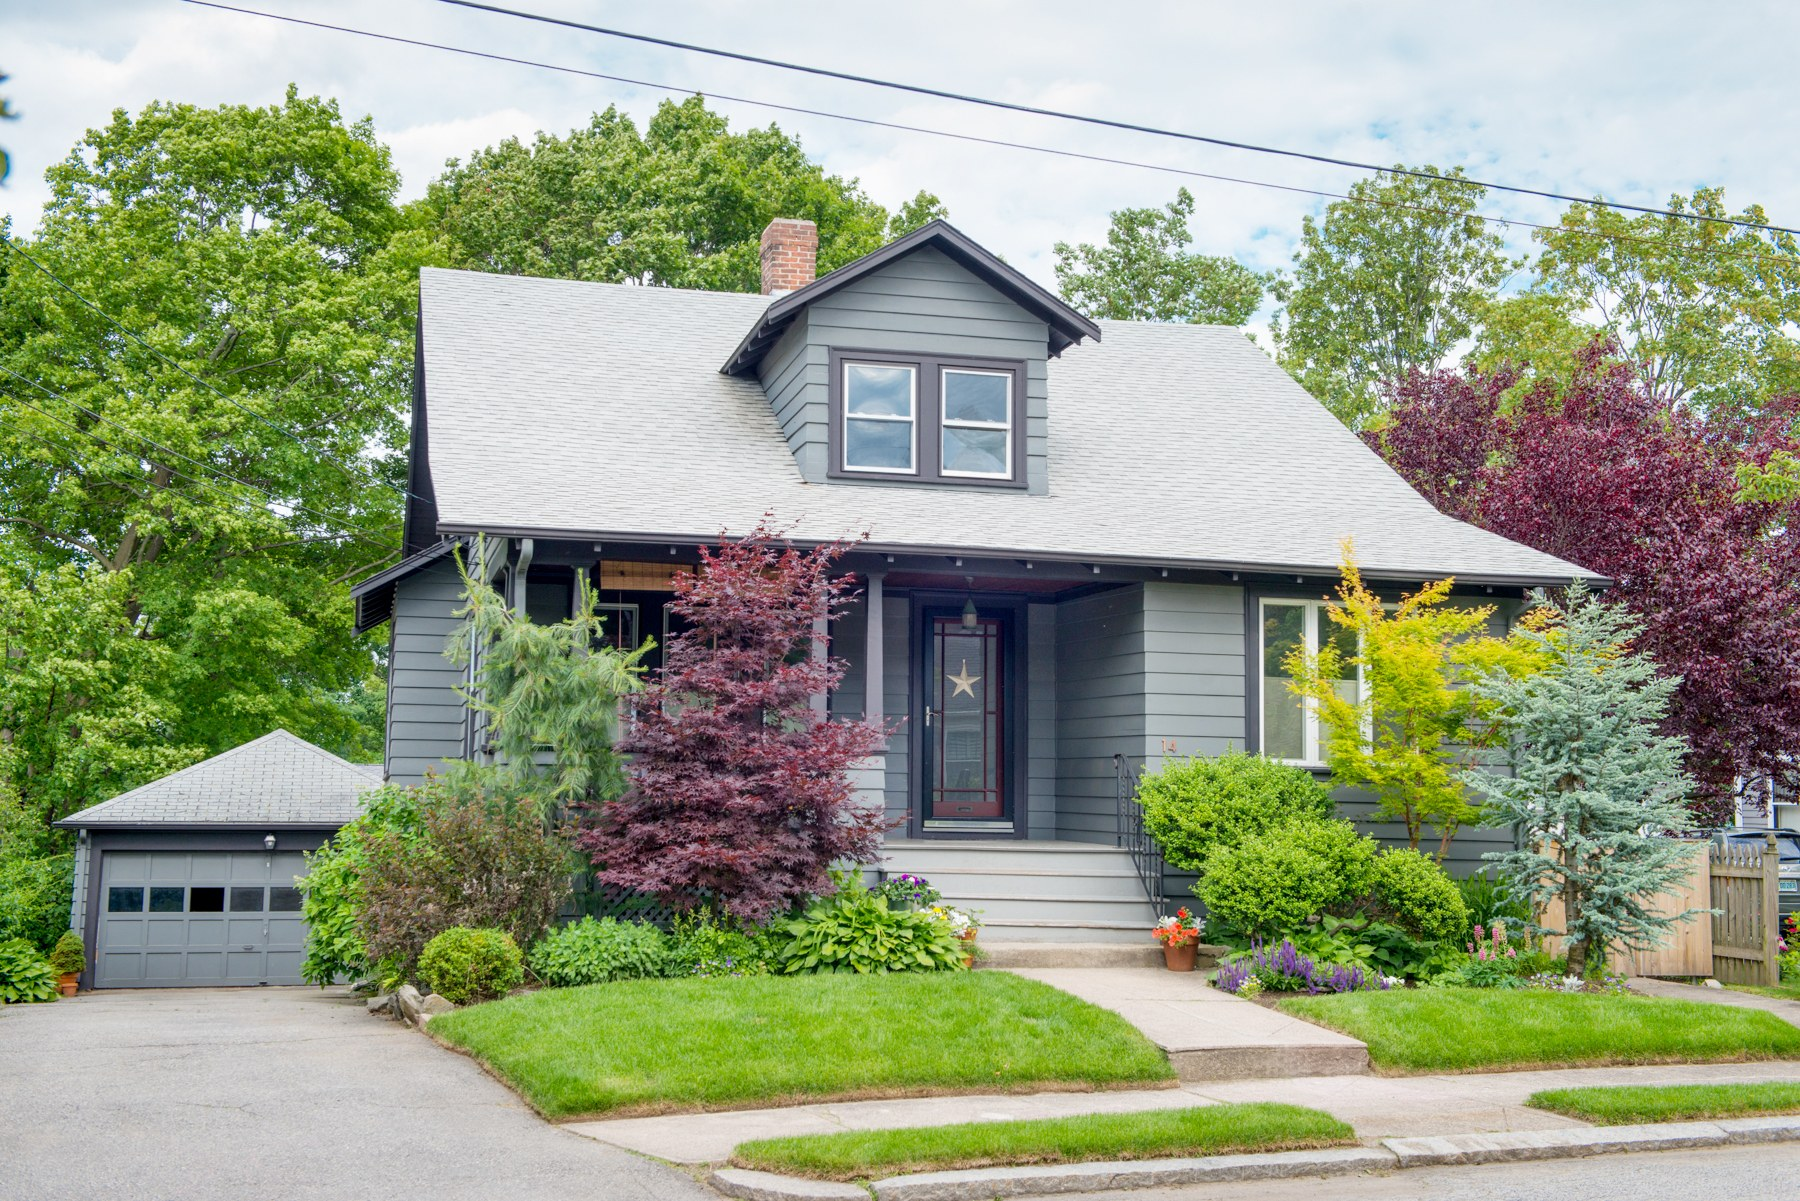 14 MARBURY AV, Oak Hill, Pawtucket, RI 02860